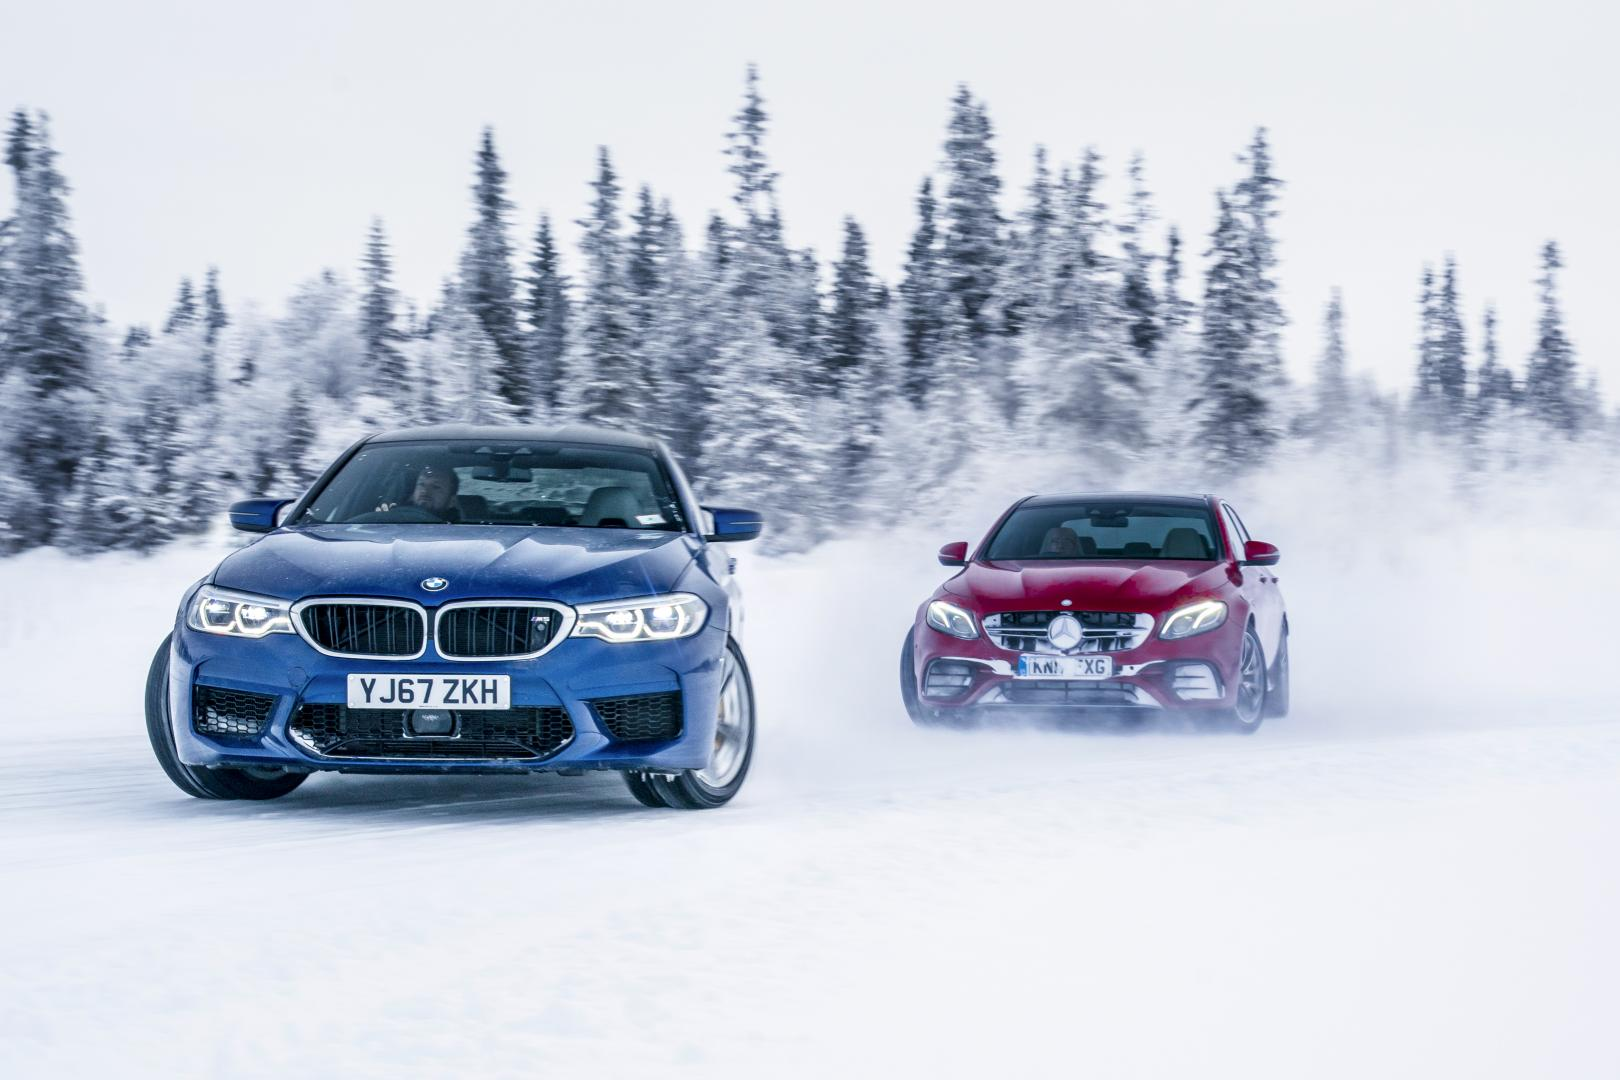 BMW M5 vs Mercedes-AMG E 63 S